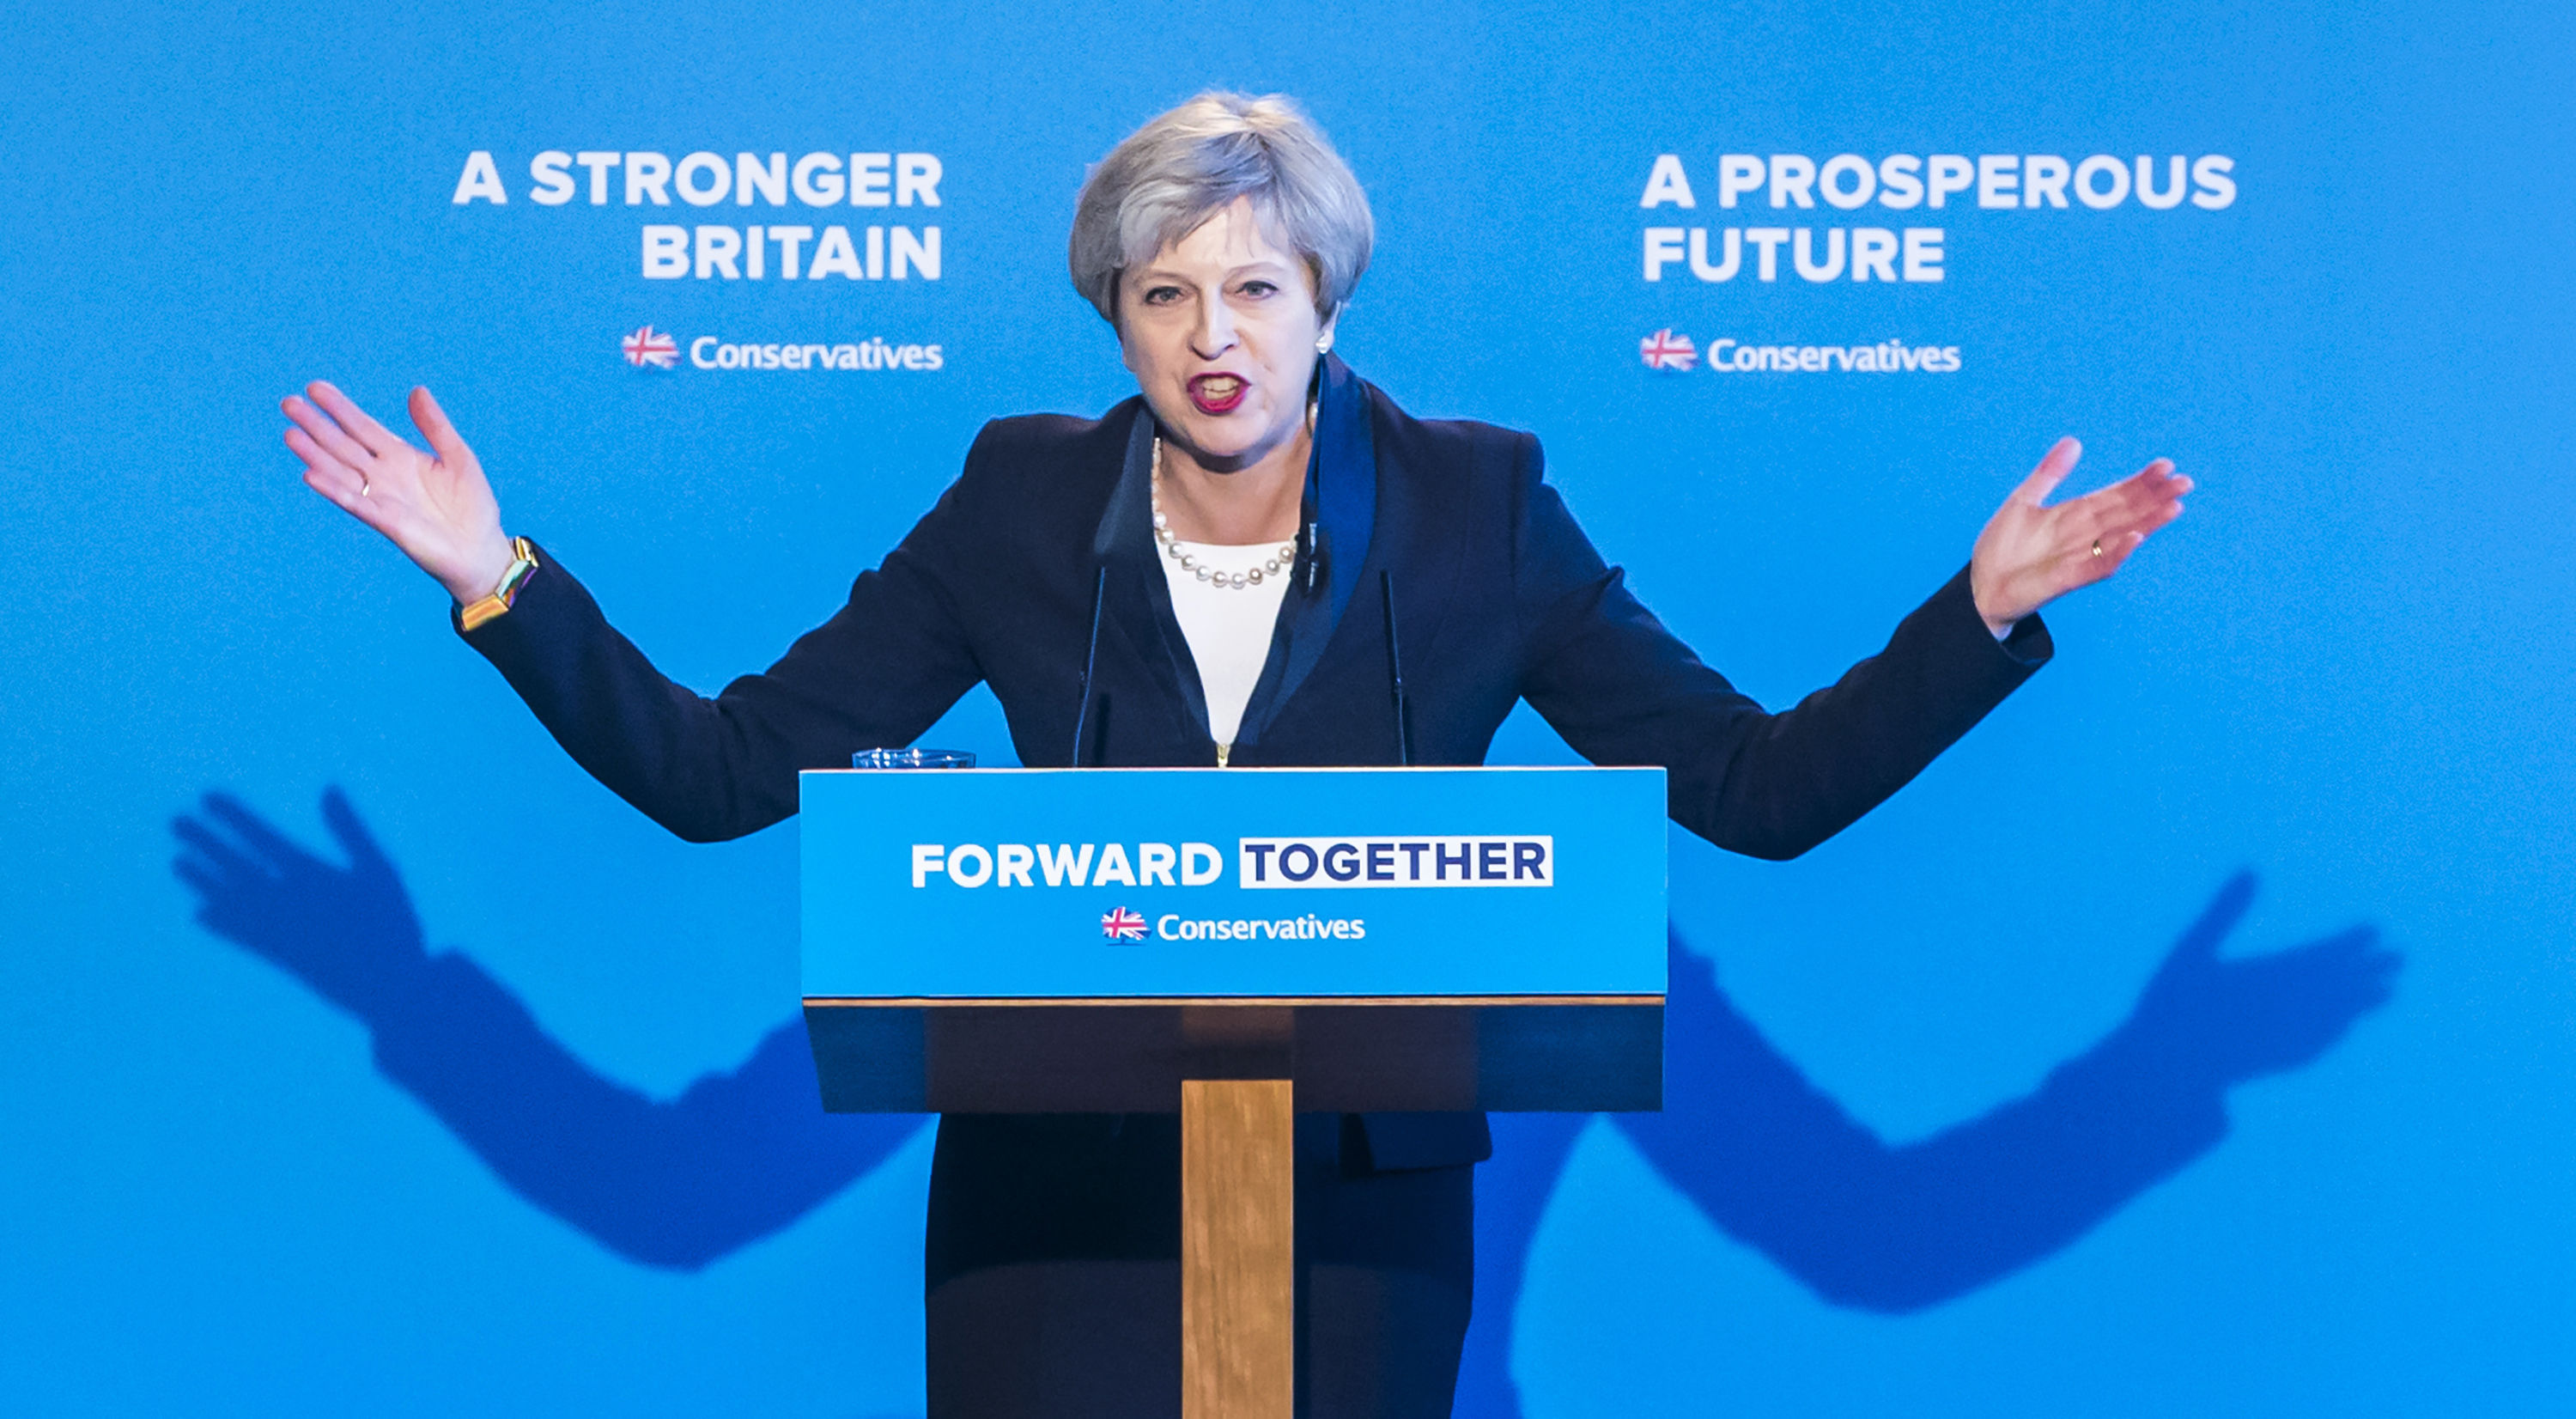 Mrs May's awkward demeanour and endlessly repeated 'strong and stable' mantra saw her dubbed the Maybot during the 2017 election campaign